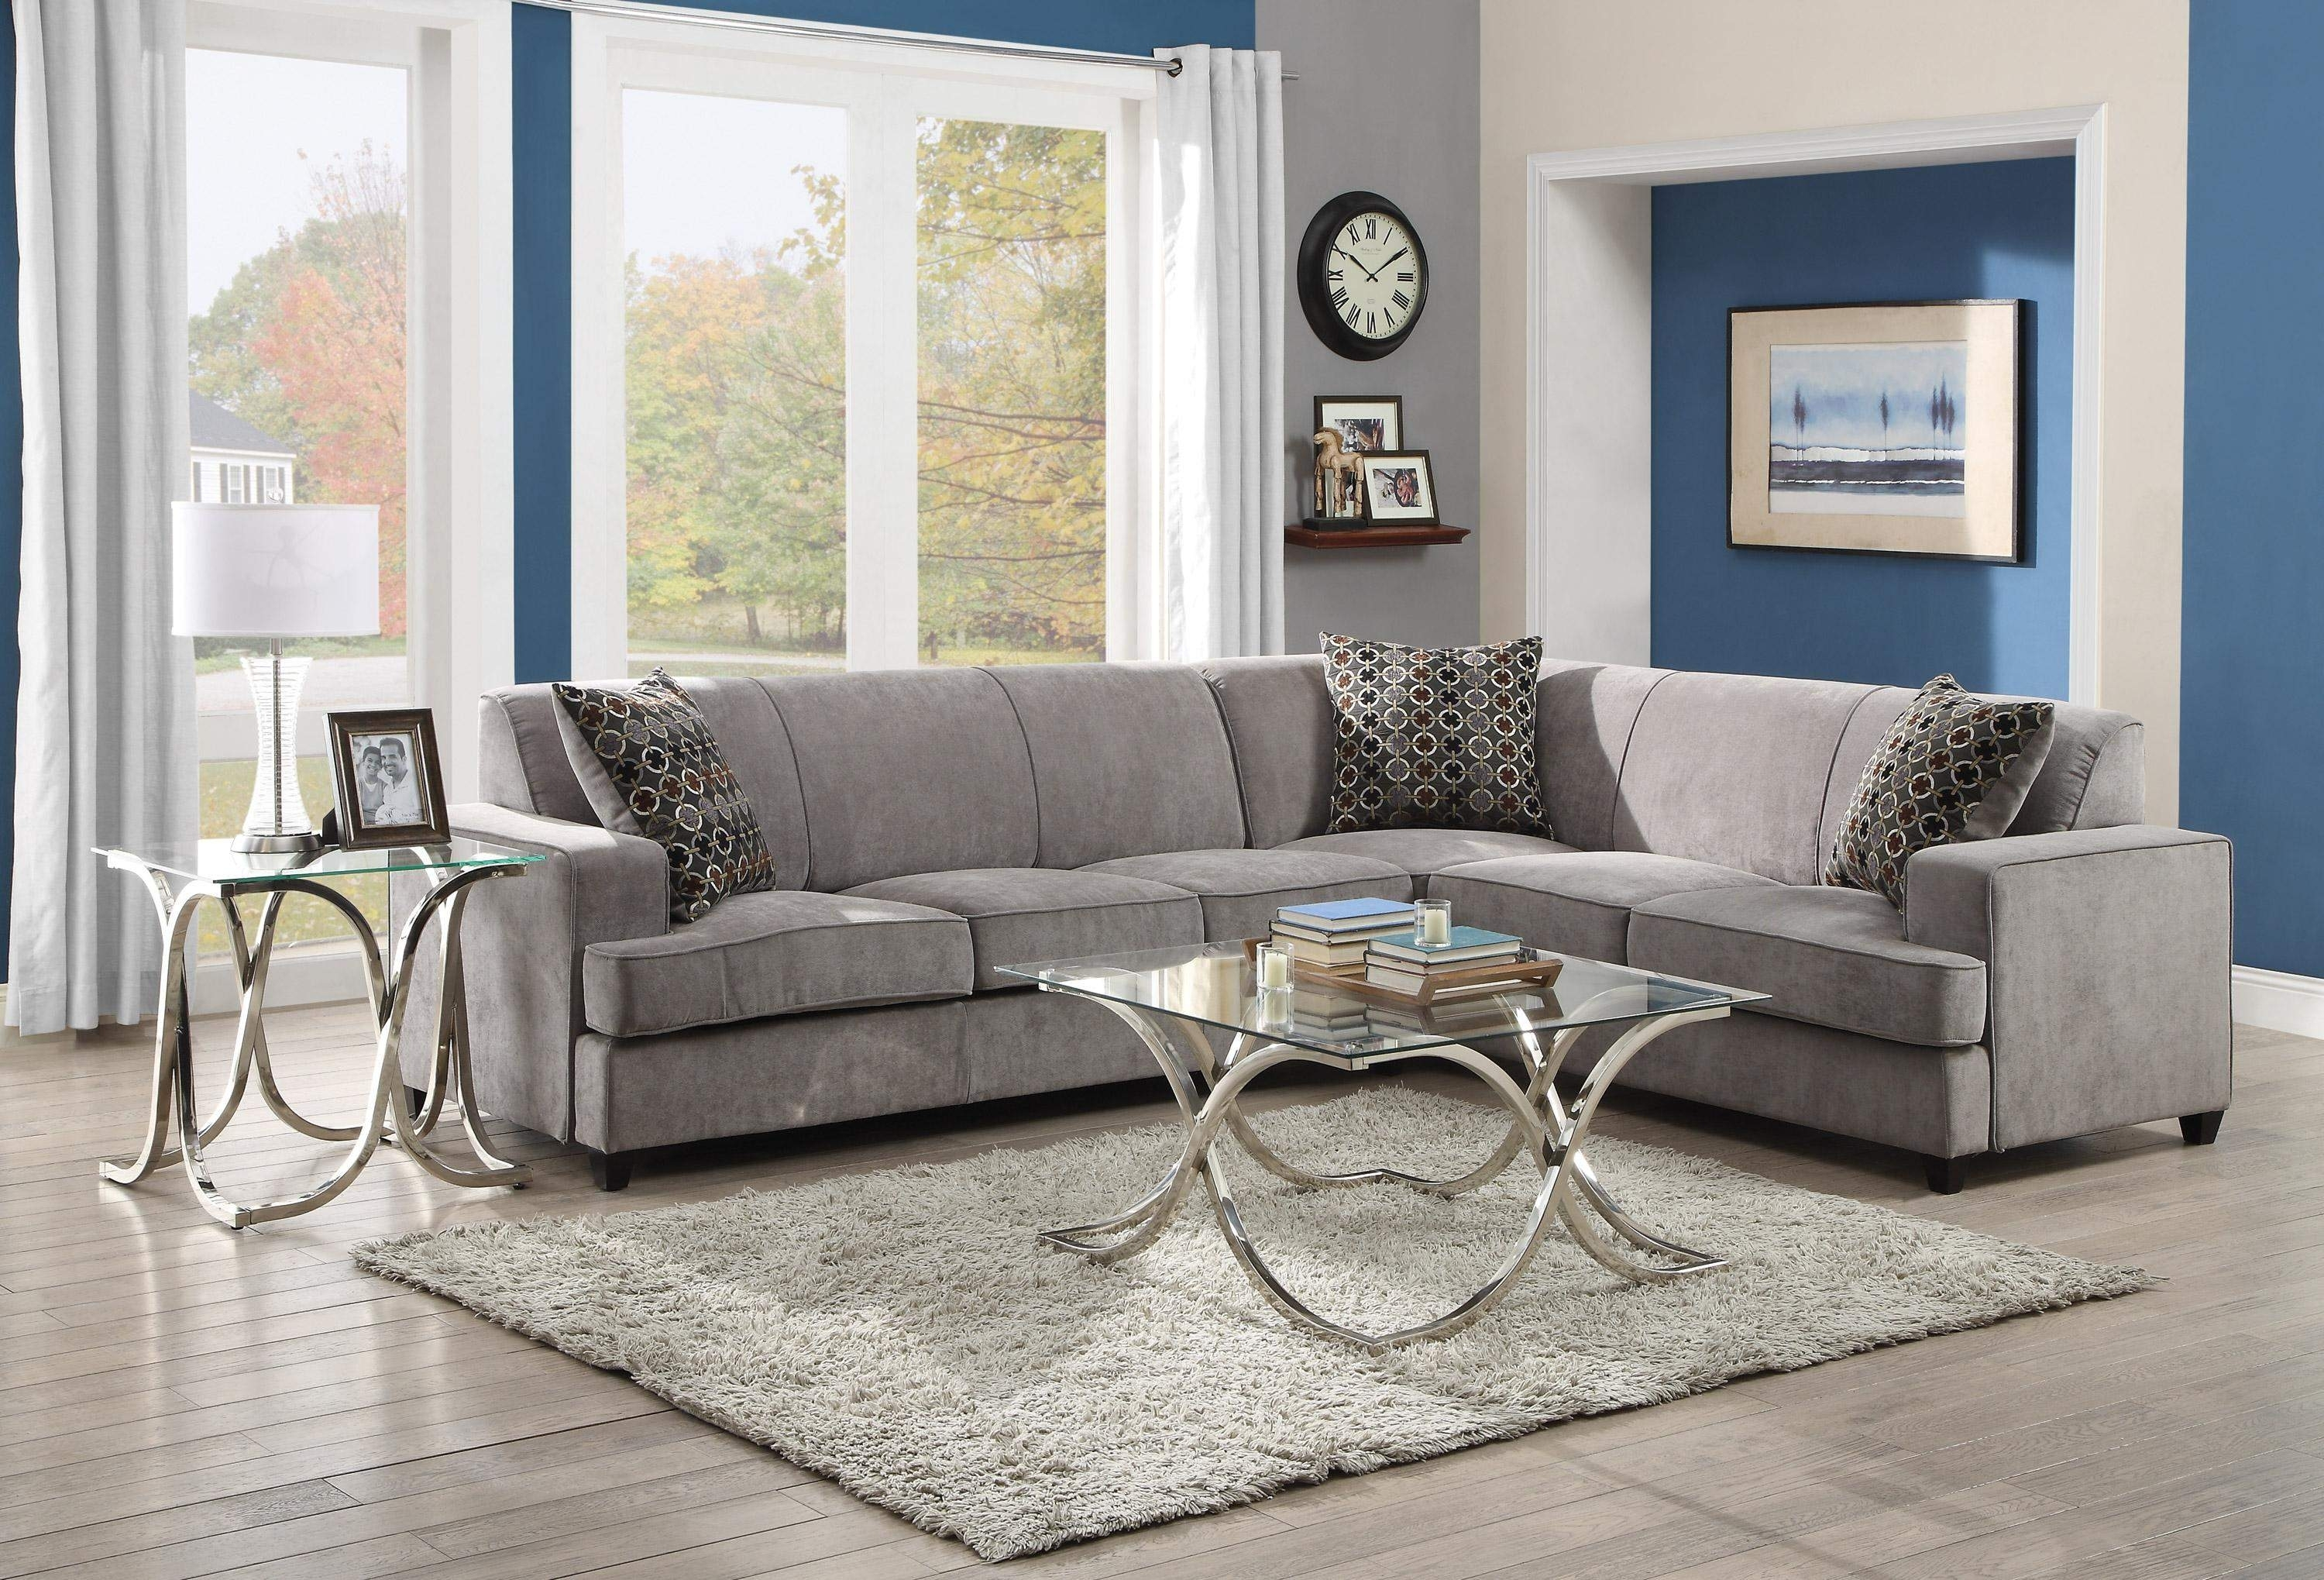 Tess Casual Grey Fabric Sectional Sofa For Corners With Queen Size With Regard To Sectional Sofas With Queen Size Sleeper (Image 10 of 10)